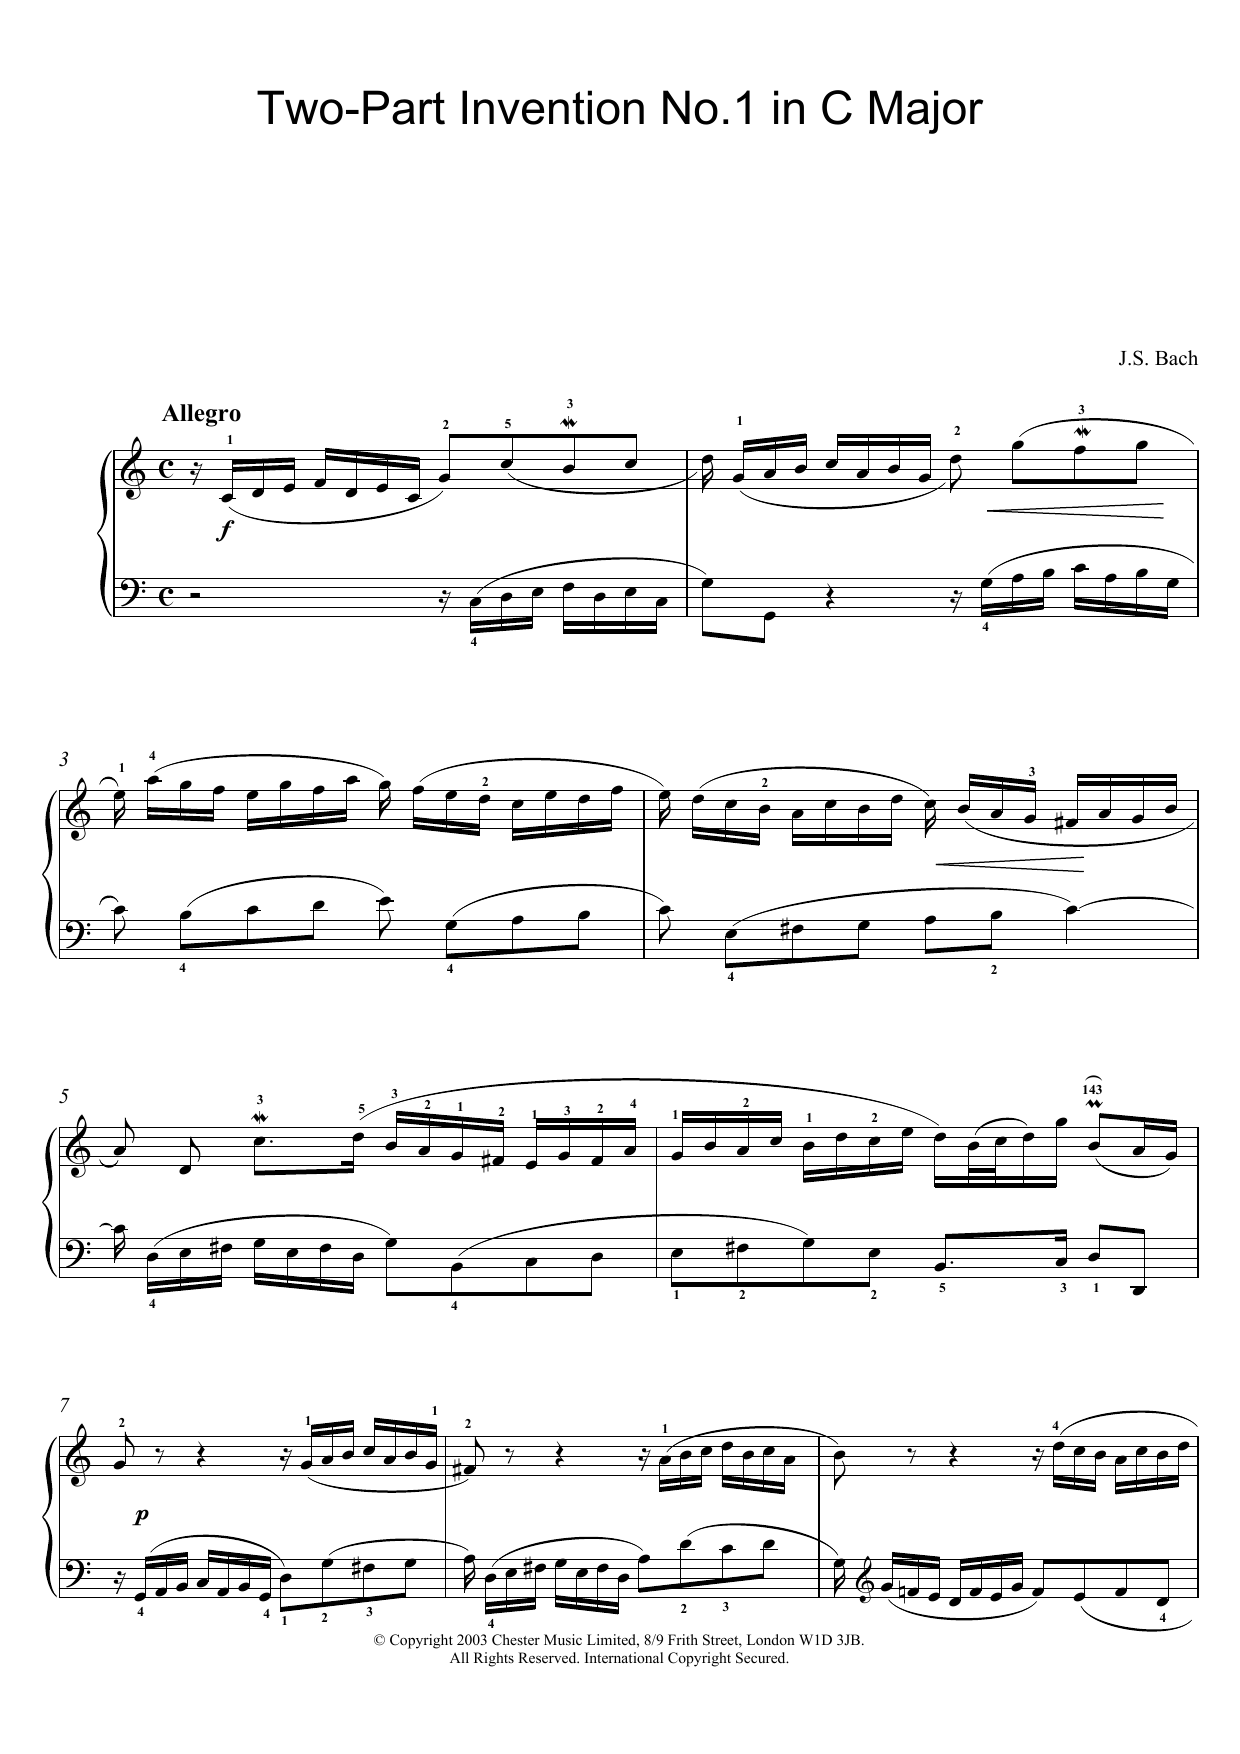 J.S. Bach Two-Part Invention No.1 in C Major sheet music preview music notes and score for Piano including 2 page(s)